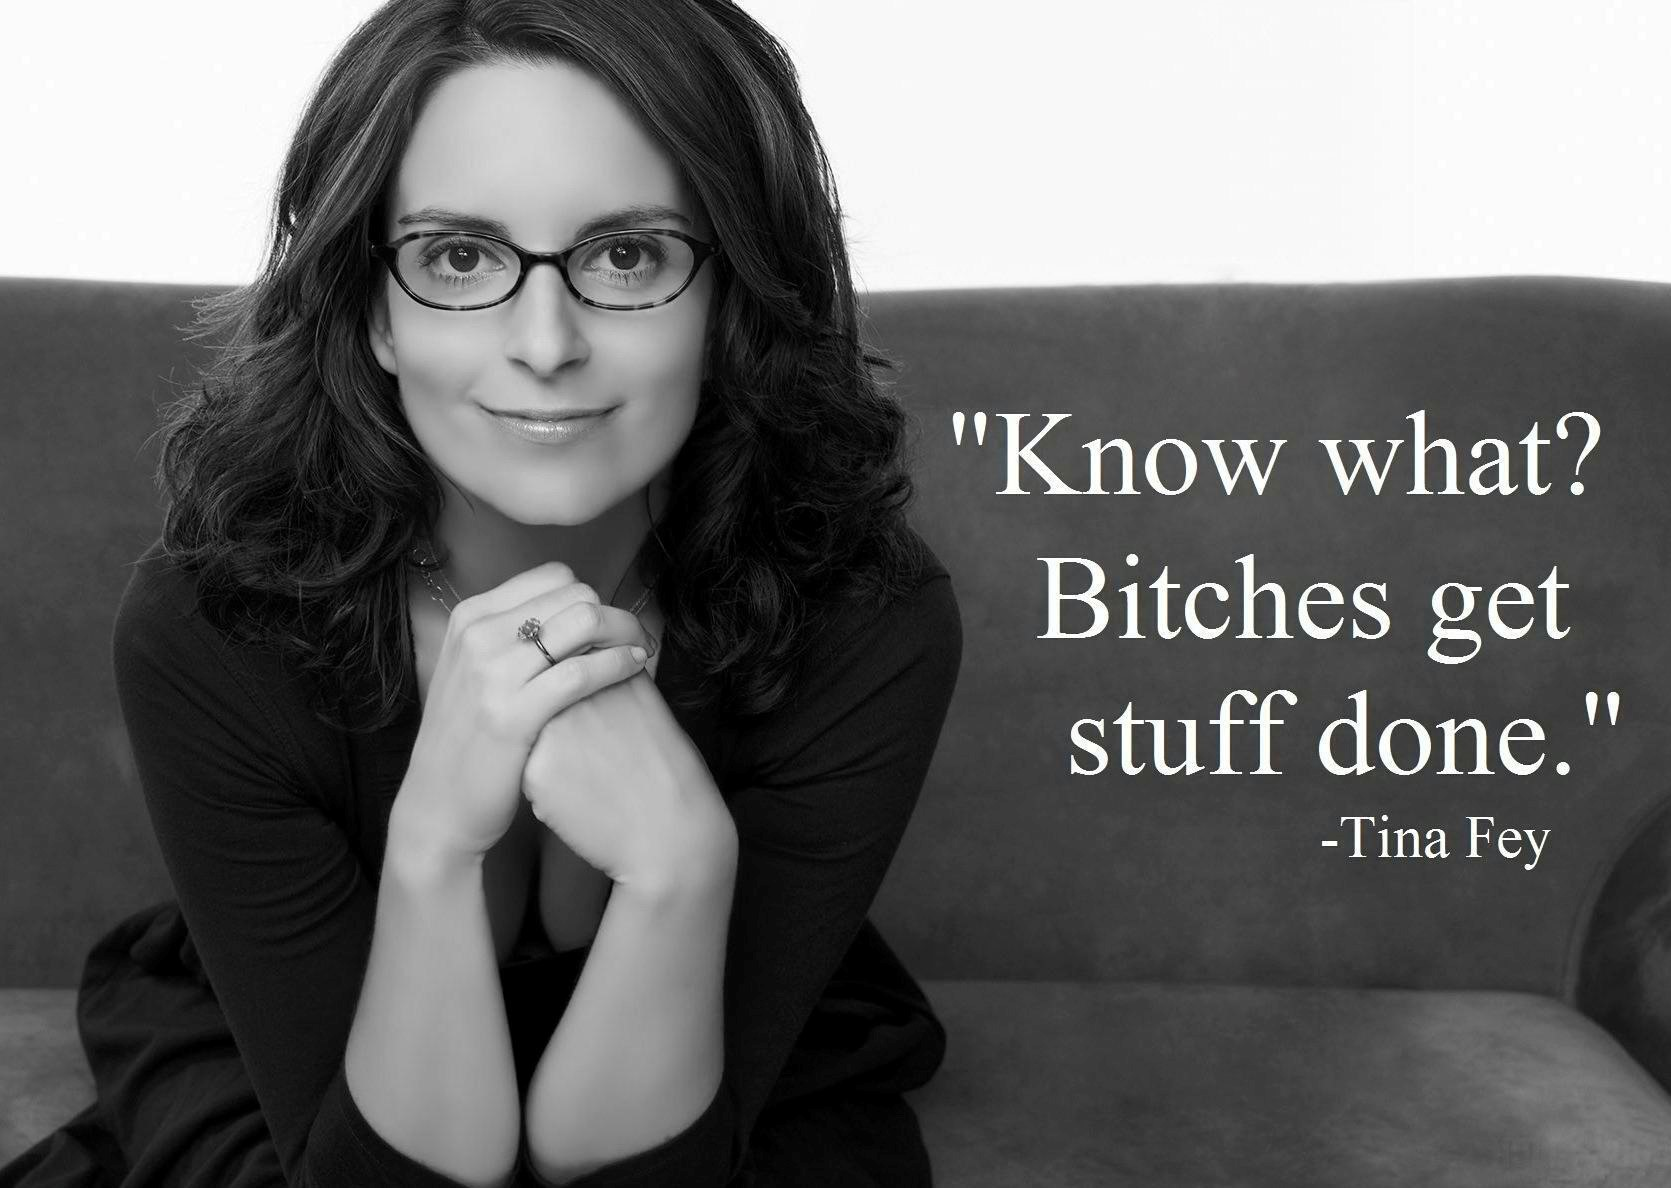 bitches-get-stuff-done-tina-fey-daily-quotes-sayings-pictures